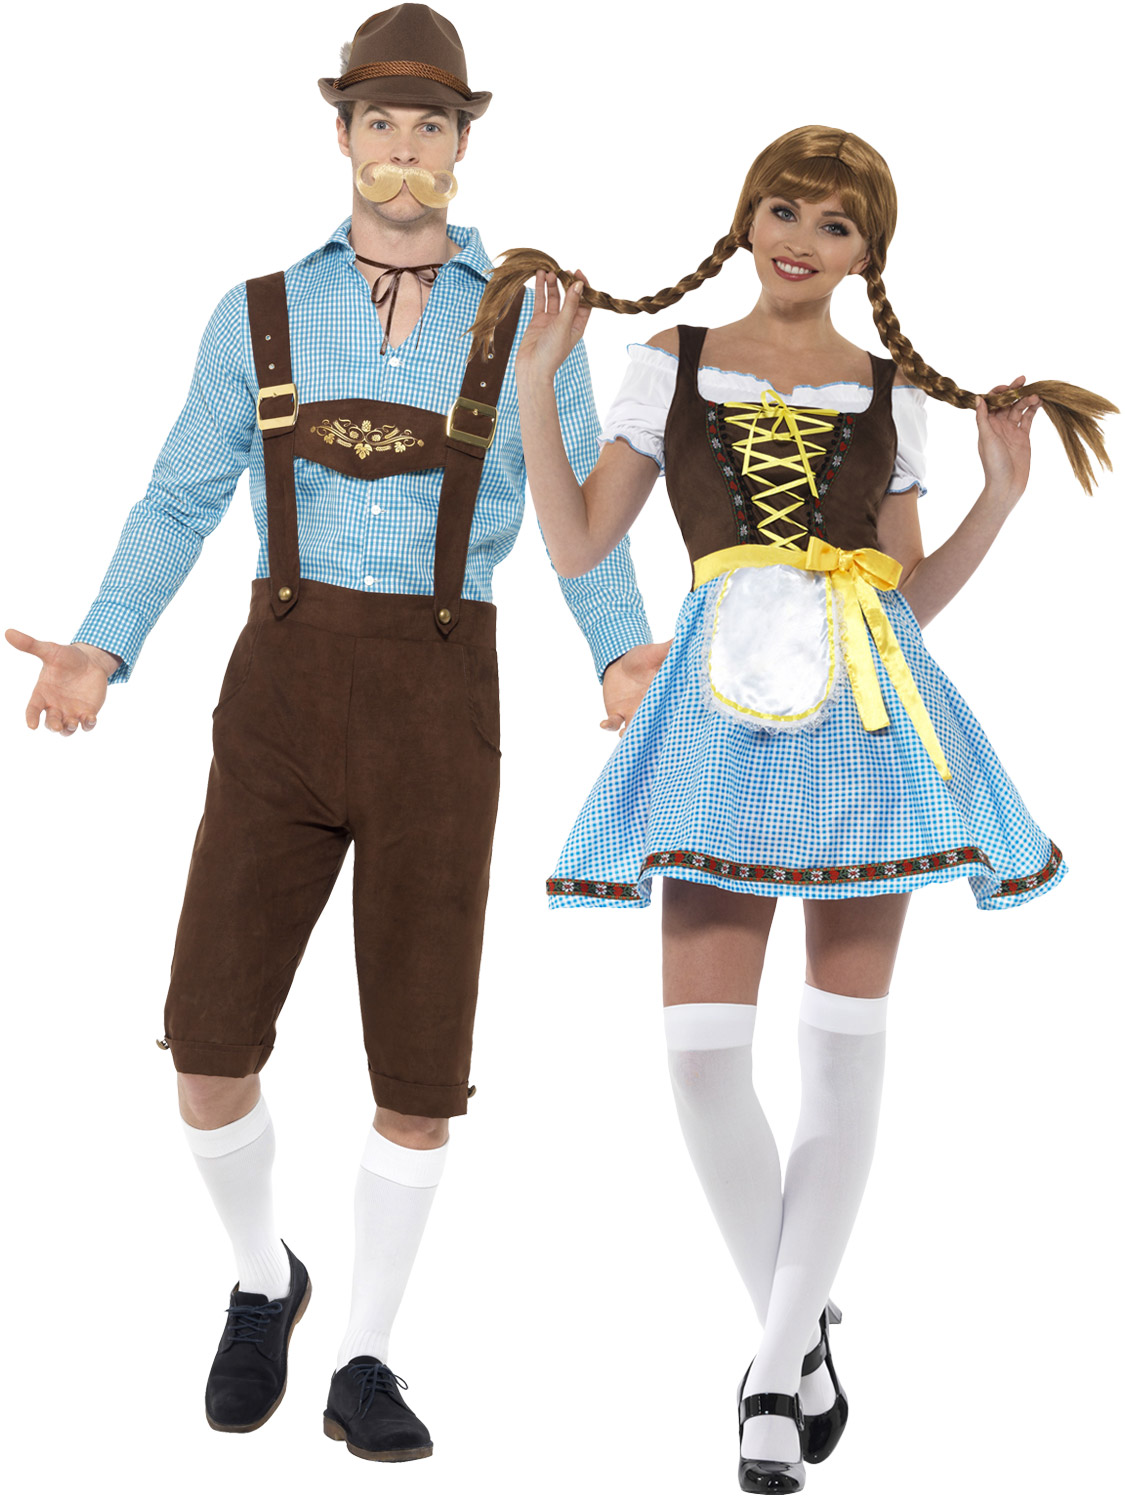 Mens Ladies Oktoberfest Costume Bavarian Beer Lederhosen Couples     Are you going to an Oktoberfest party  Transform yourself into a Bavarian  with either of these costumes    They would look great if you were dressing  up as a